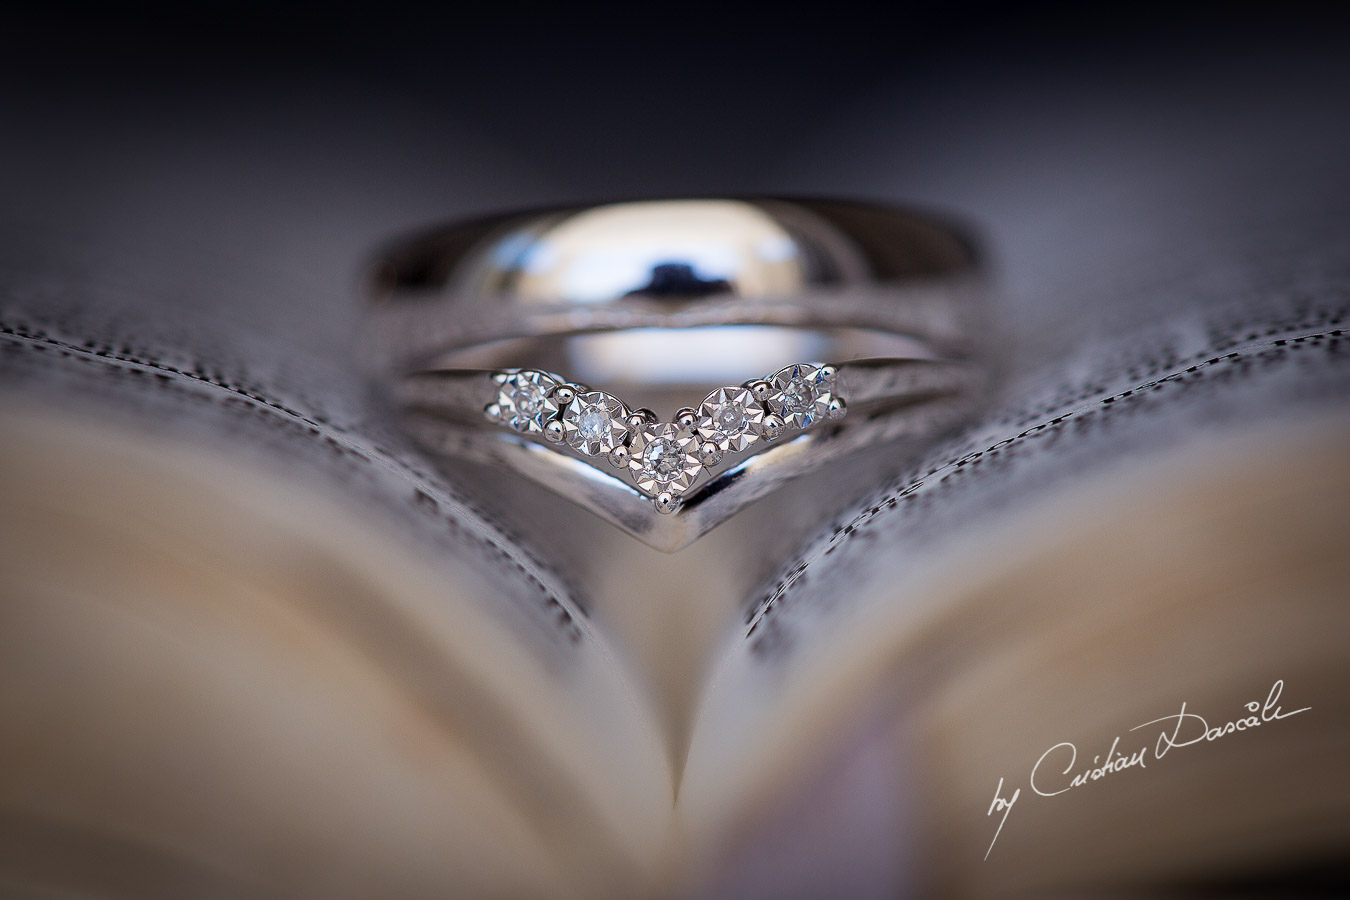 Wedding details captured at a wedding at Minthis Hills in Cyprus, by Cristian Dascalu.